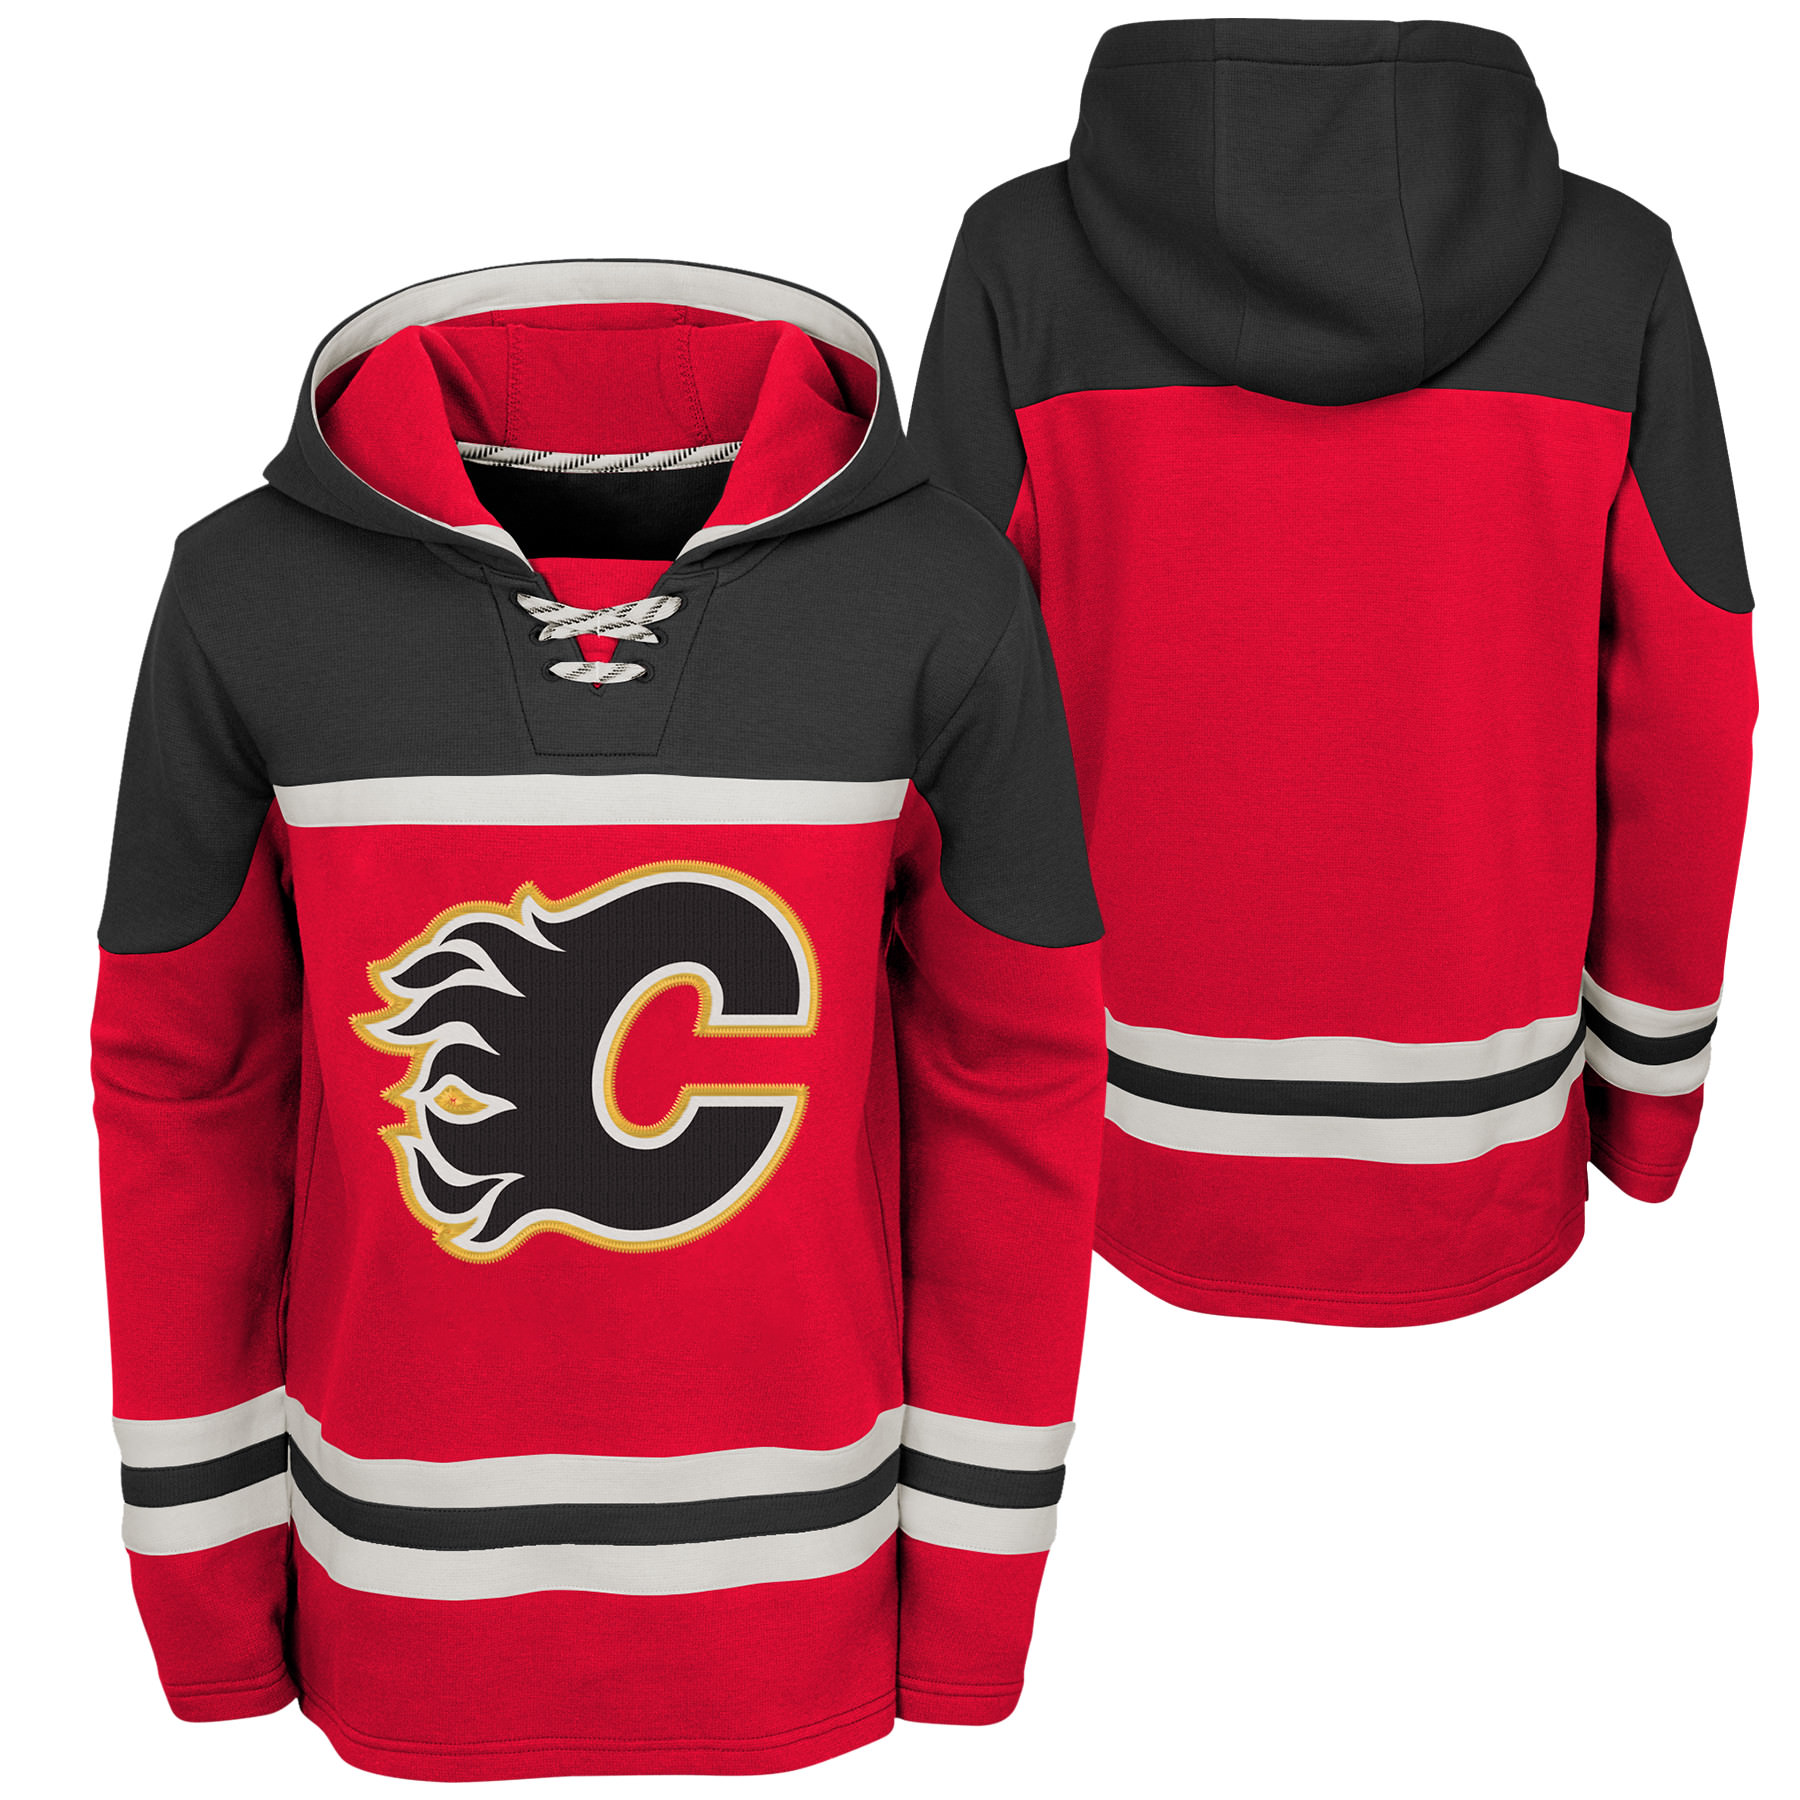 new style 58a0e 41a7f Outerstuff Youth Calgary Flames NHL Asset Hockey Hoodie